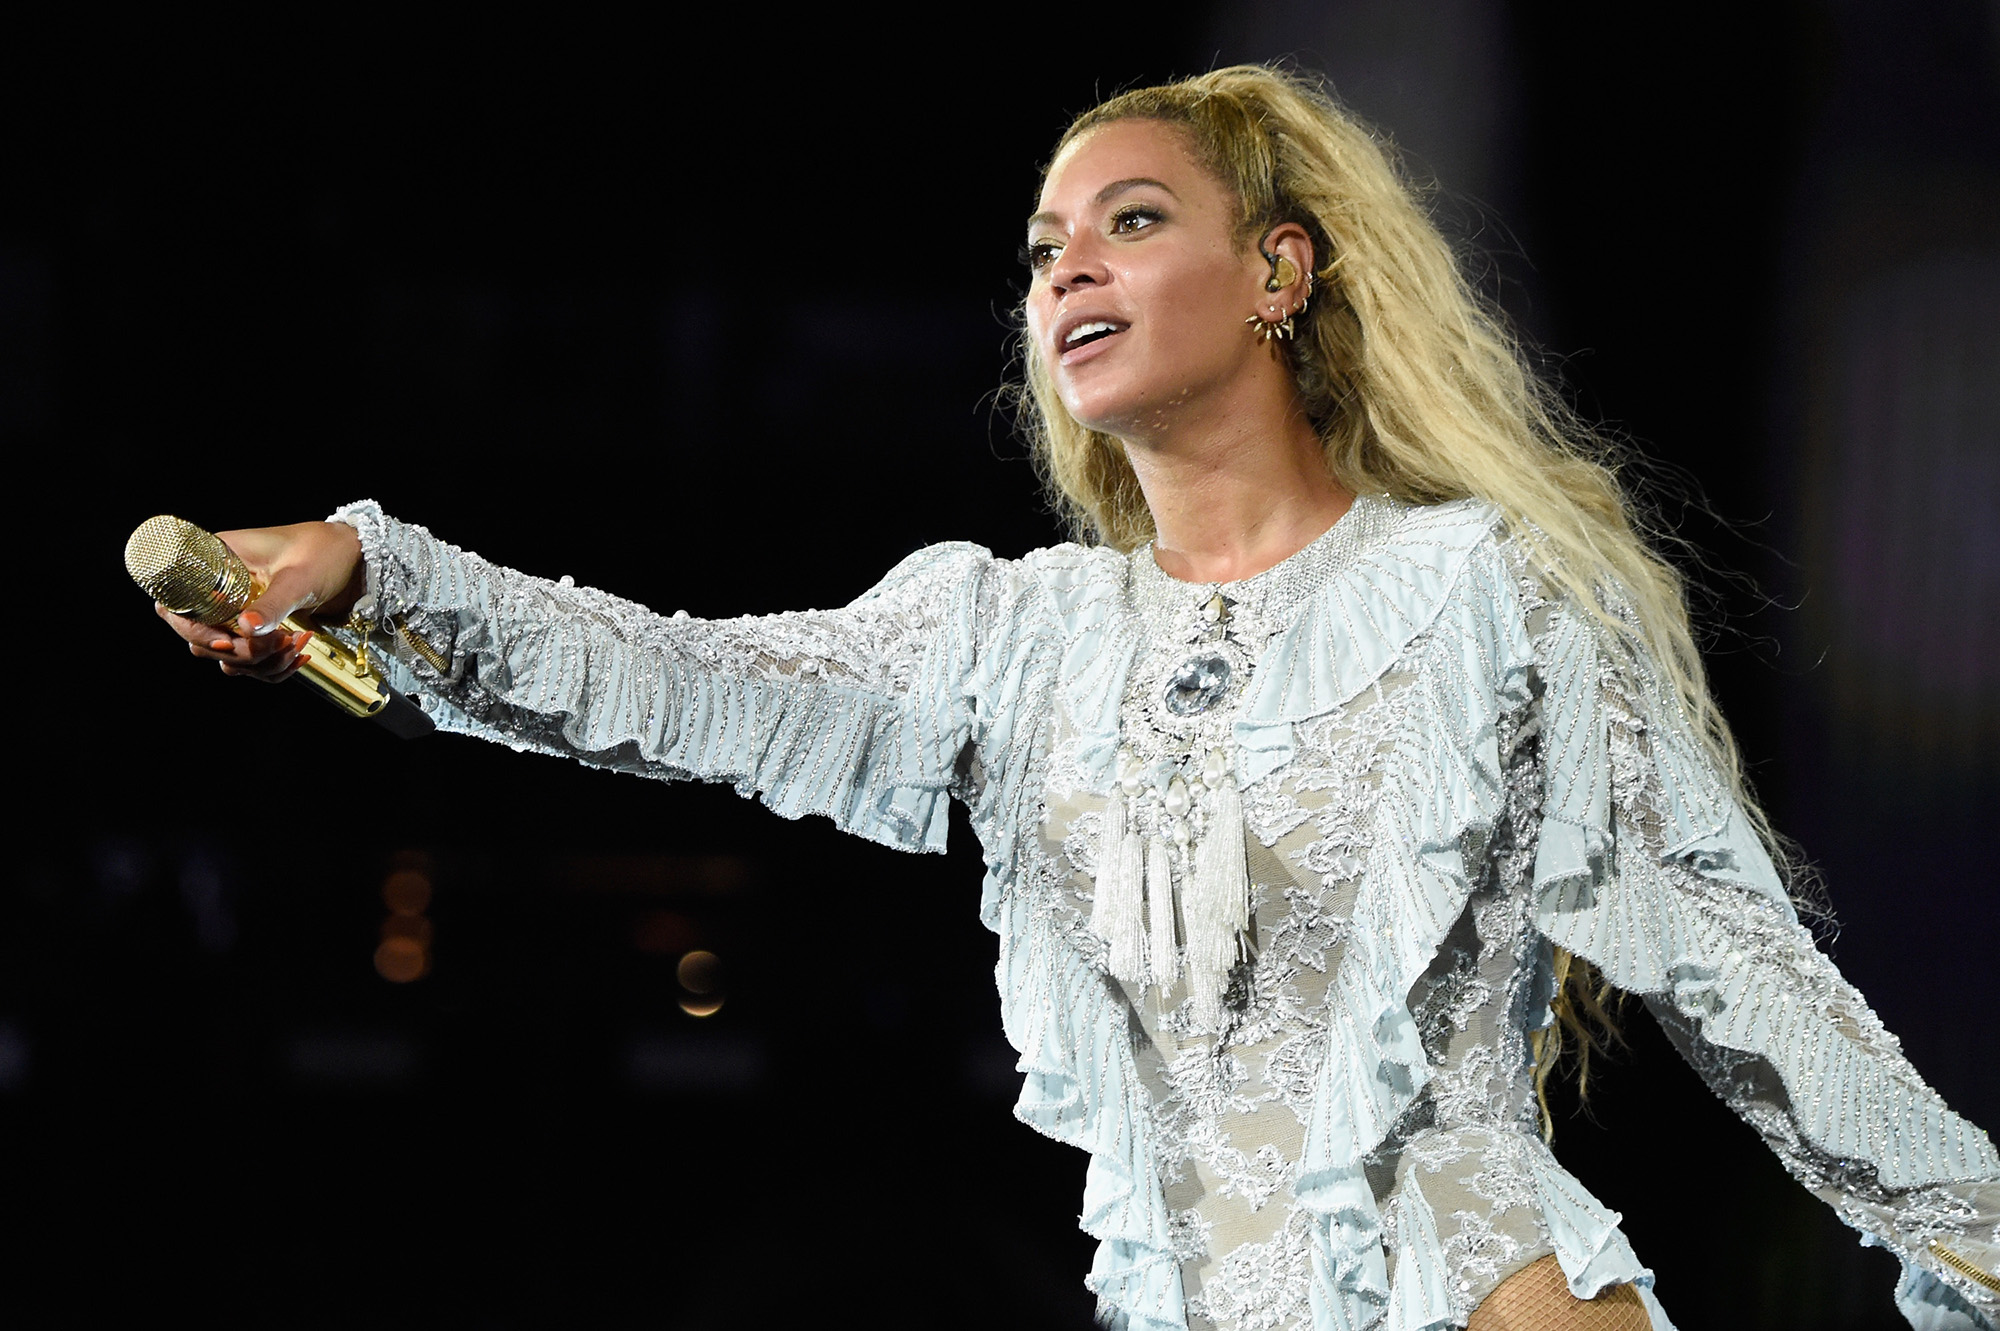 Beyonce performs on stage during  The Formation World Tour  at Levi's Stadium on September 17, 2016 in Santa Clara, California.  (Photo by Kevin Mazur/WireImage)